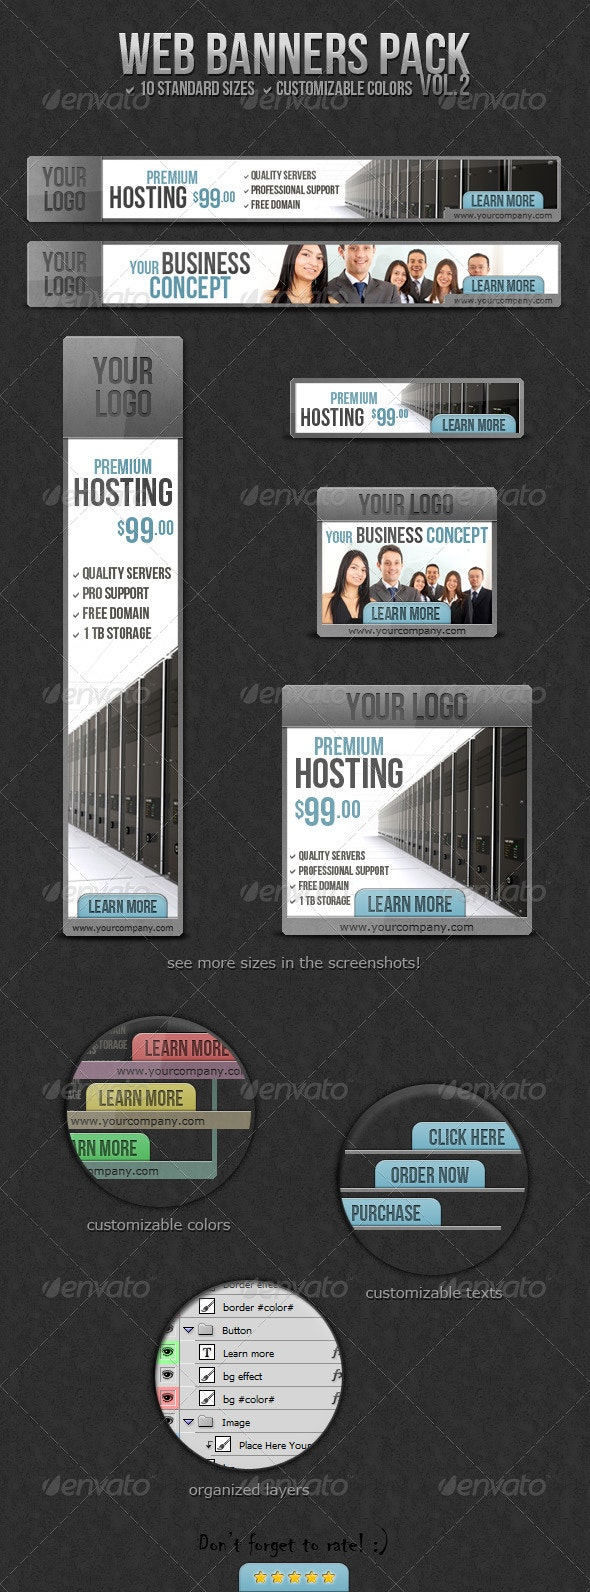 Elegant Multipurpose Web Banners Pack - Banners & Ads Web Elements